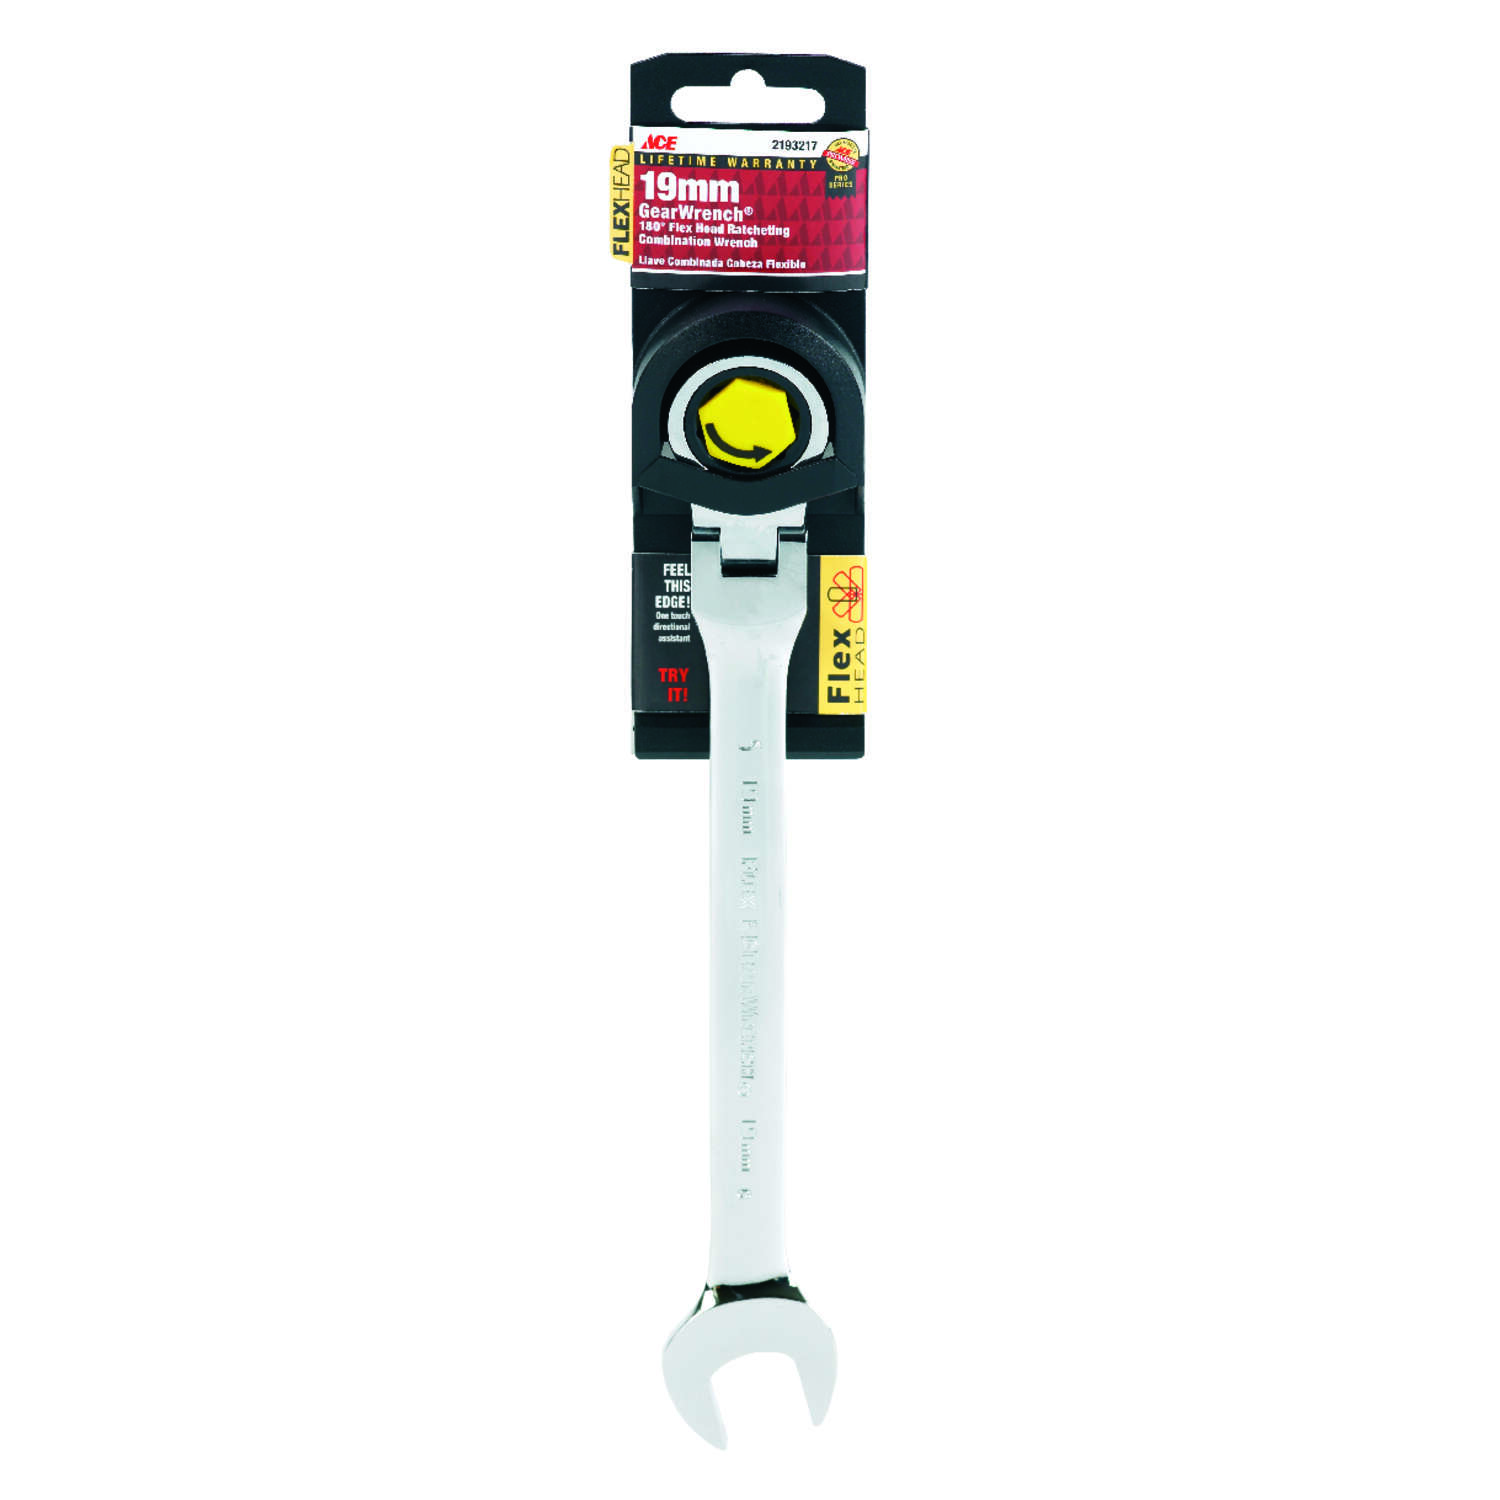 Ace  Pro Series GearWrench  19   x 19   x 9.8 in. L Metric  Flex Head Combination Wrench  1 pc.